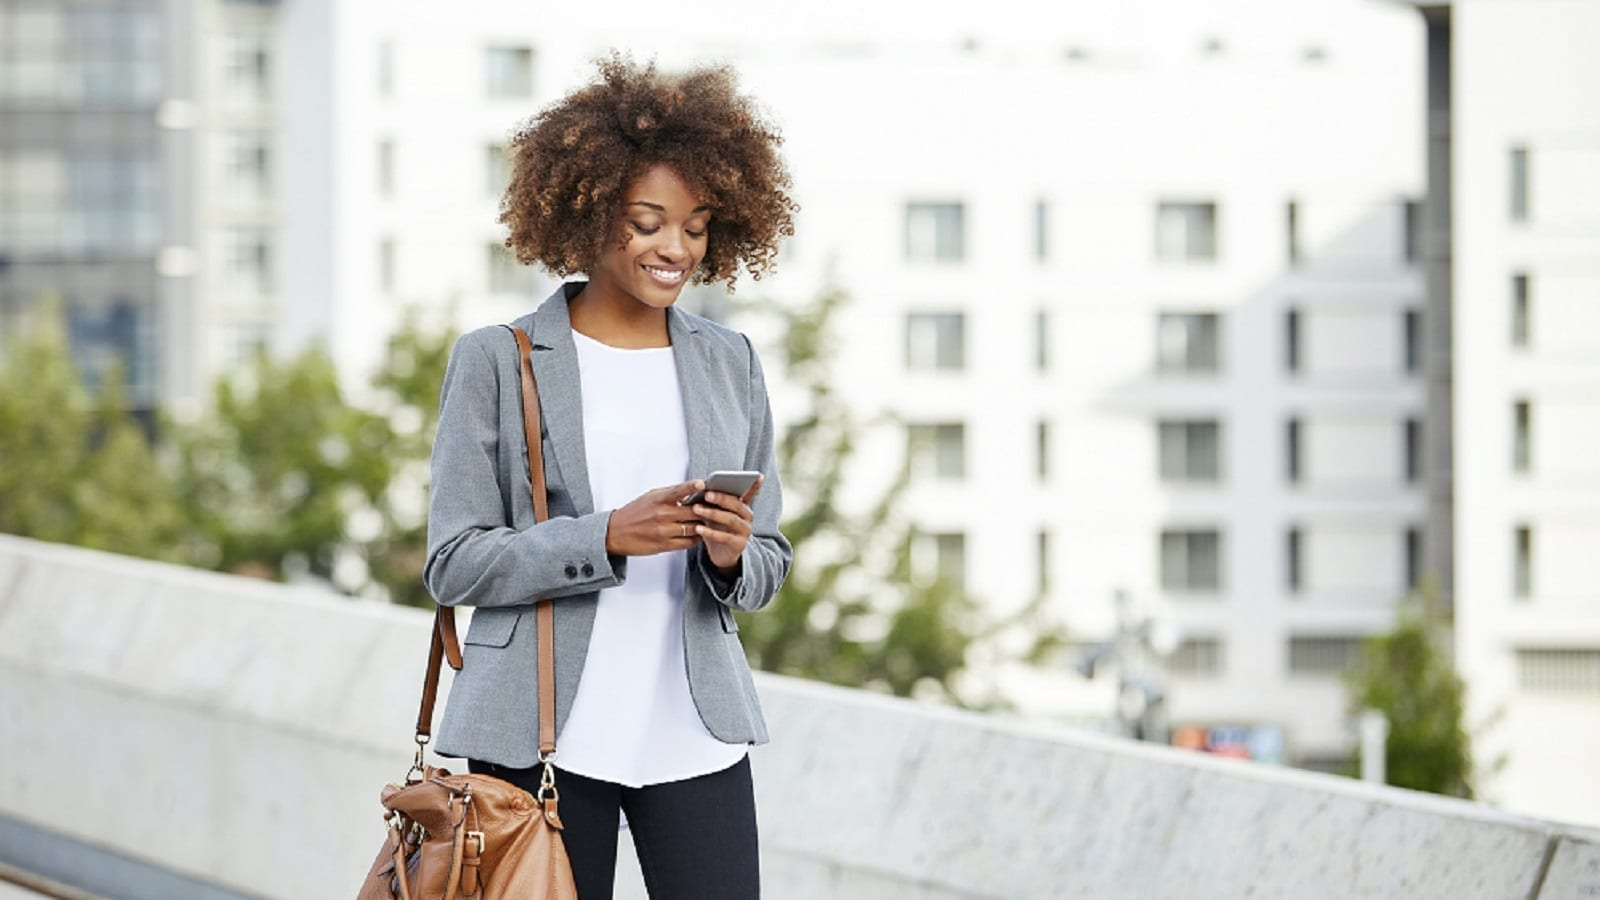 Young Woman Using Her Mobile Phone While Walking Stock Photo